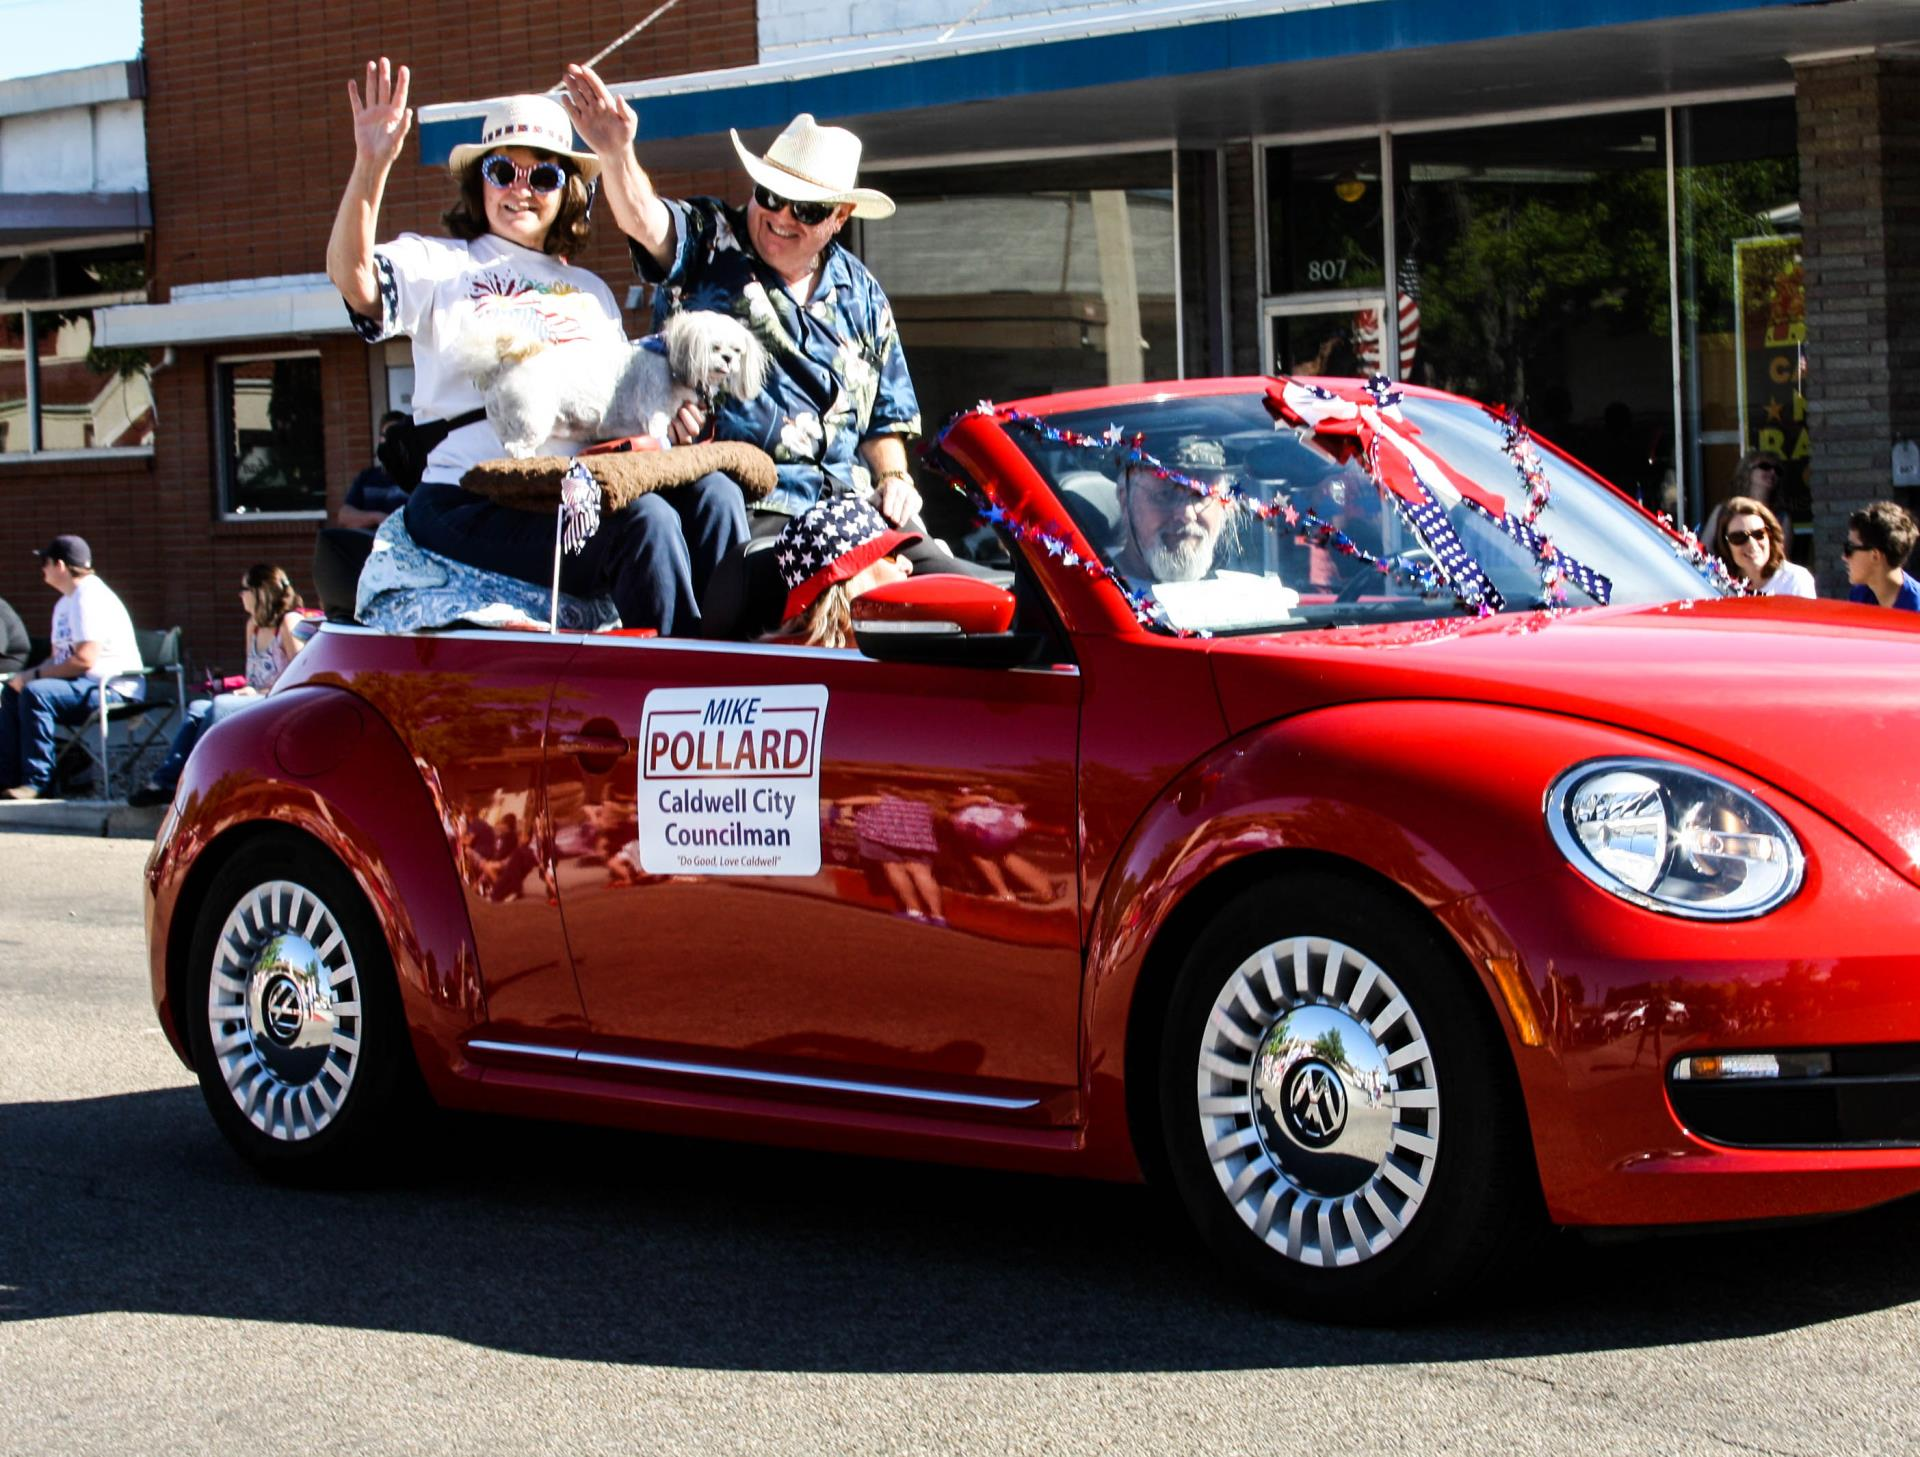 Mike Pollard 4th of July parade